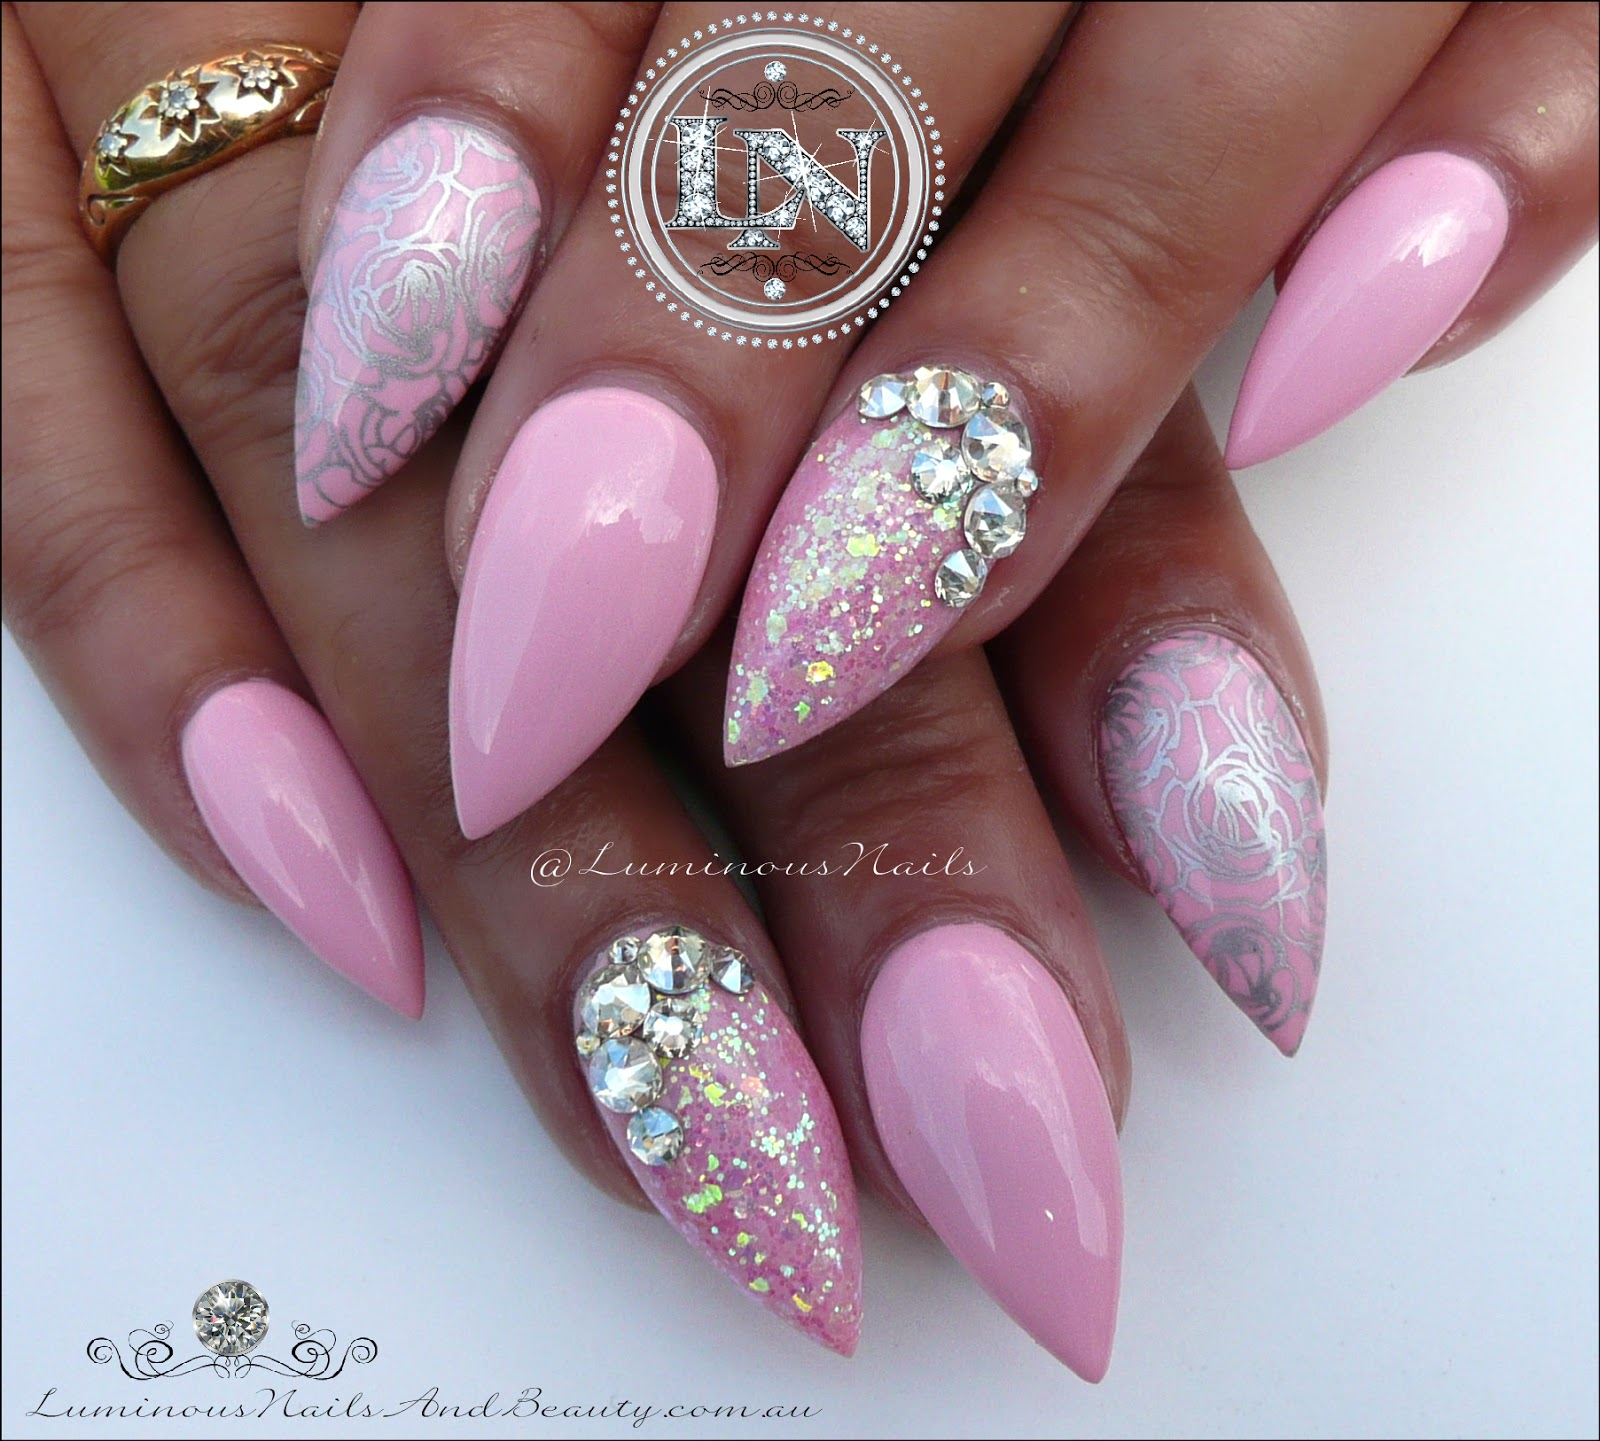 Luminous Nails: Plush Pink & Silver Nails... Acrylic & Gel Nails.